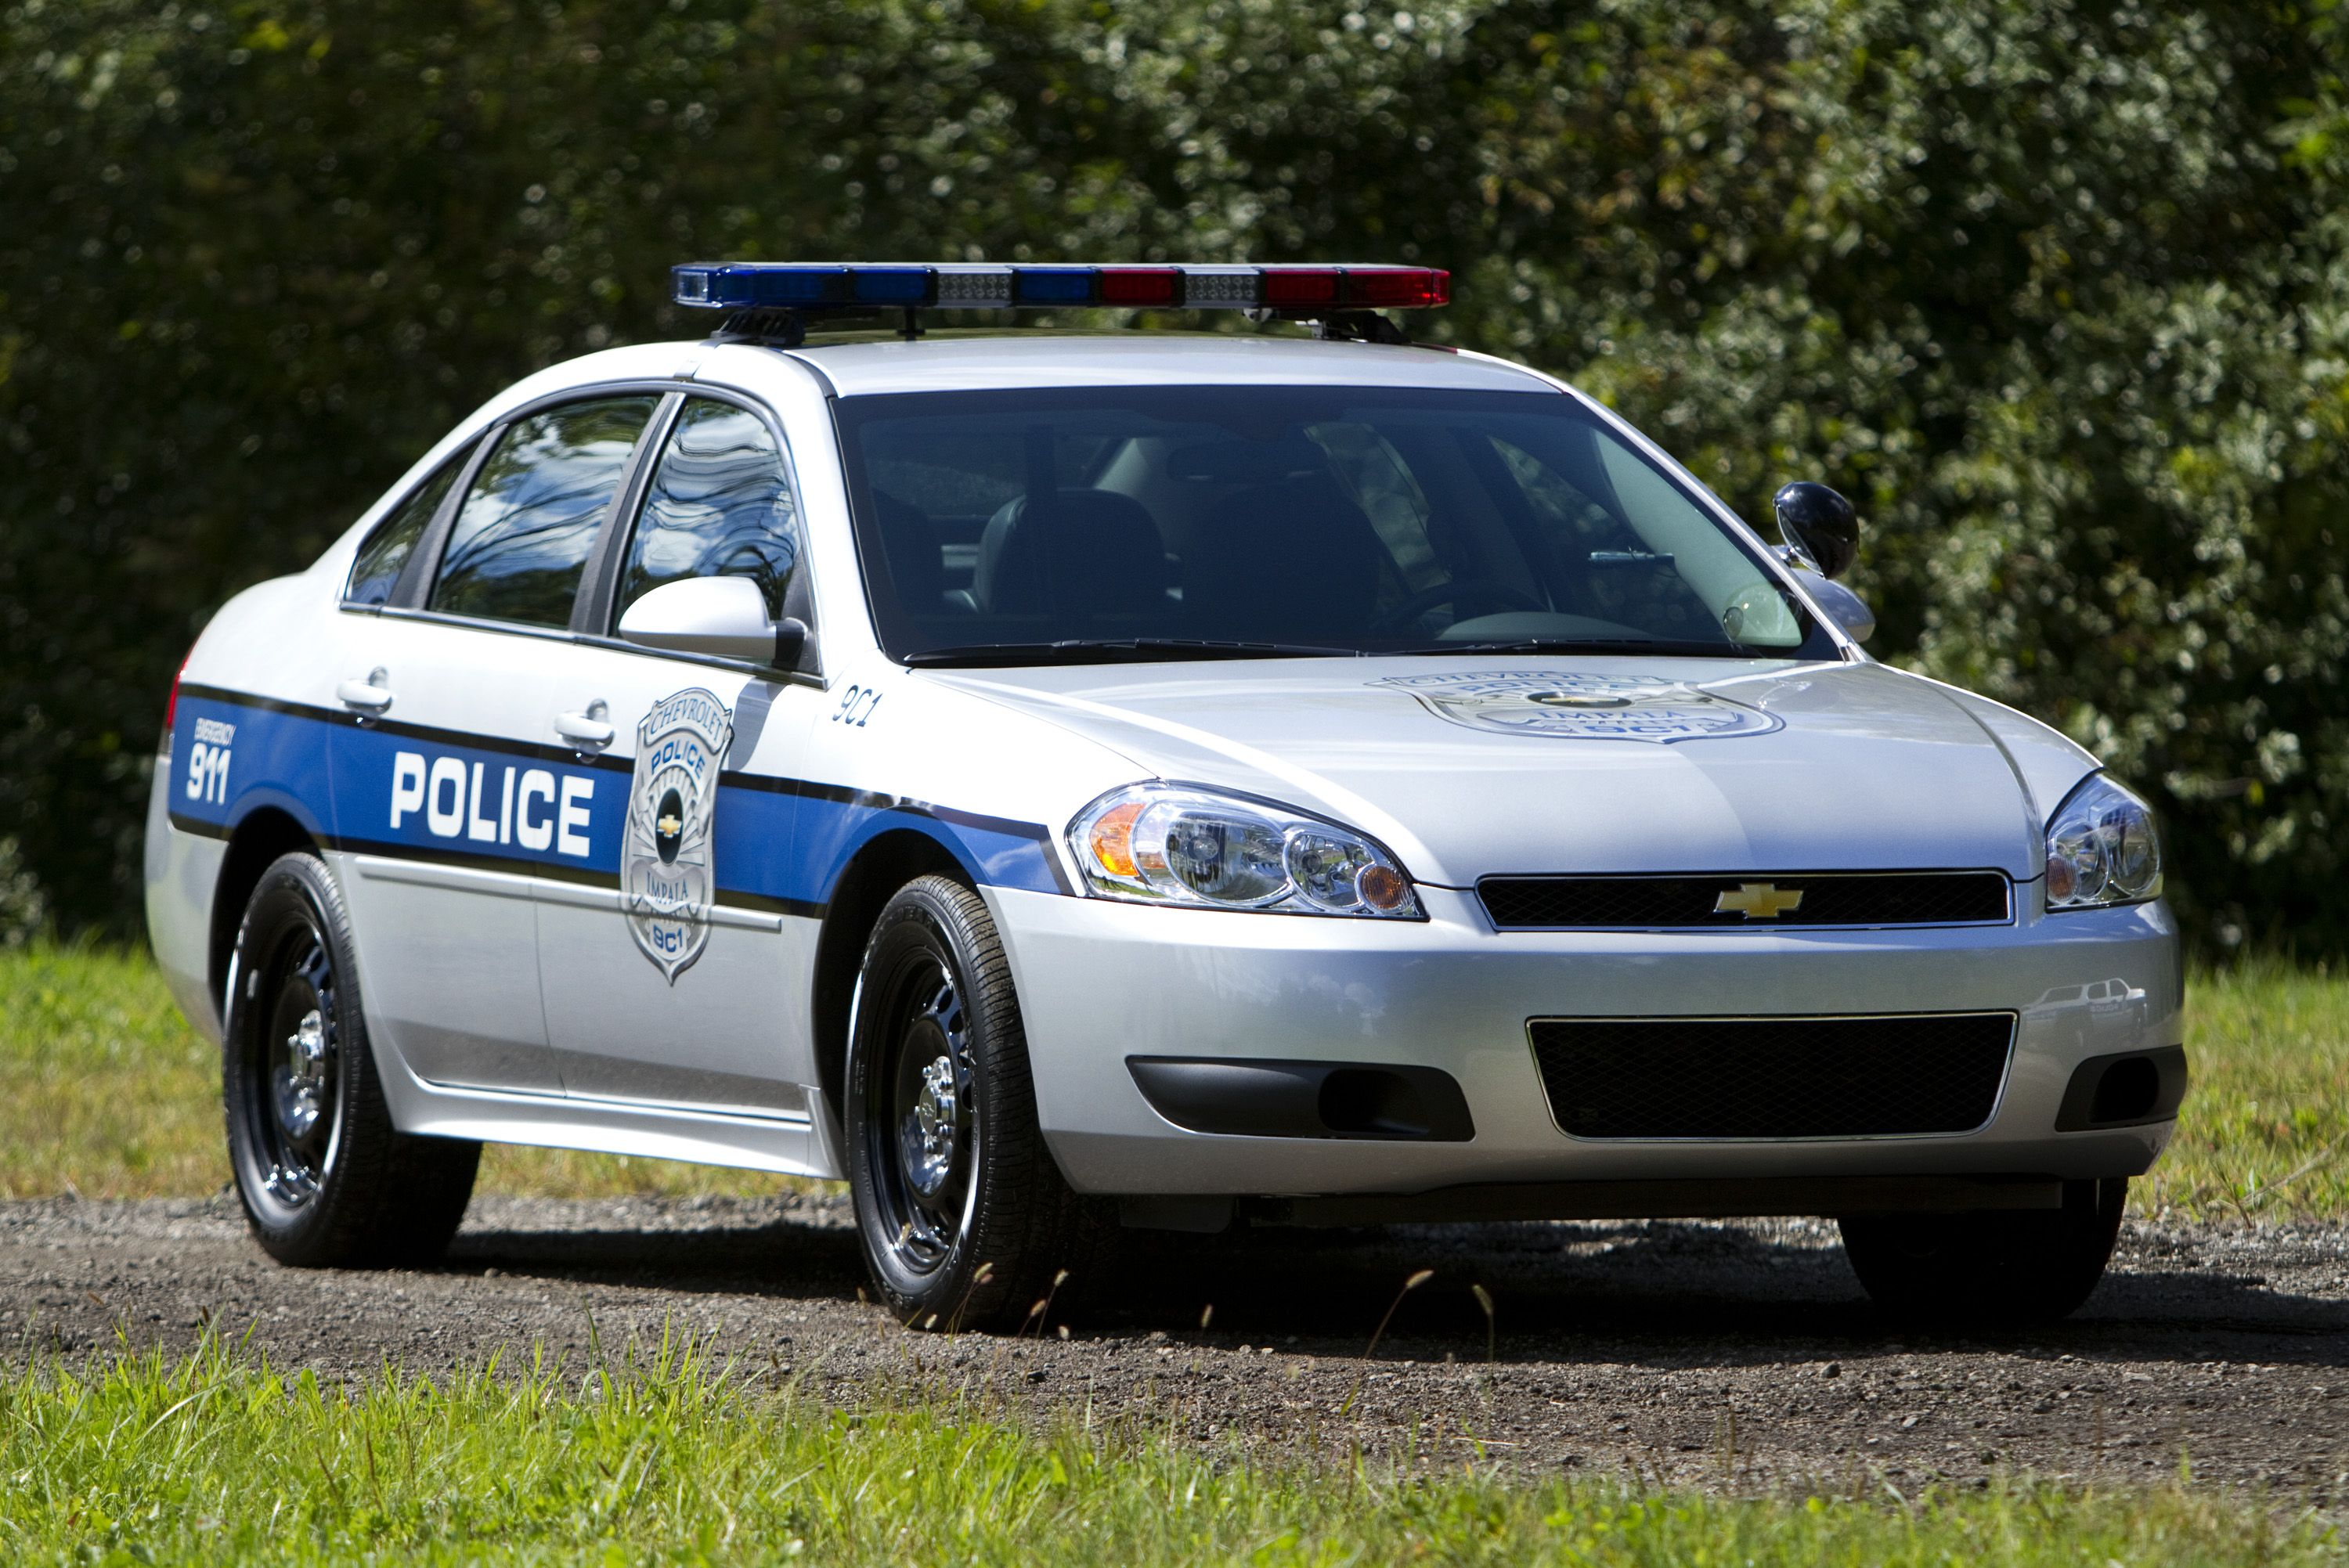 GM To Offer 'Limited' Police Chevrolet Impala Version In 2014